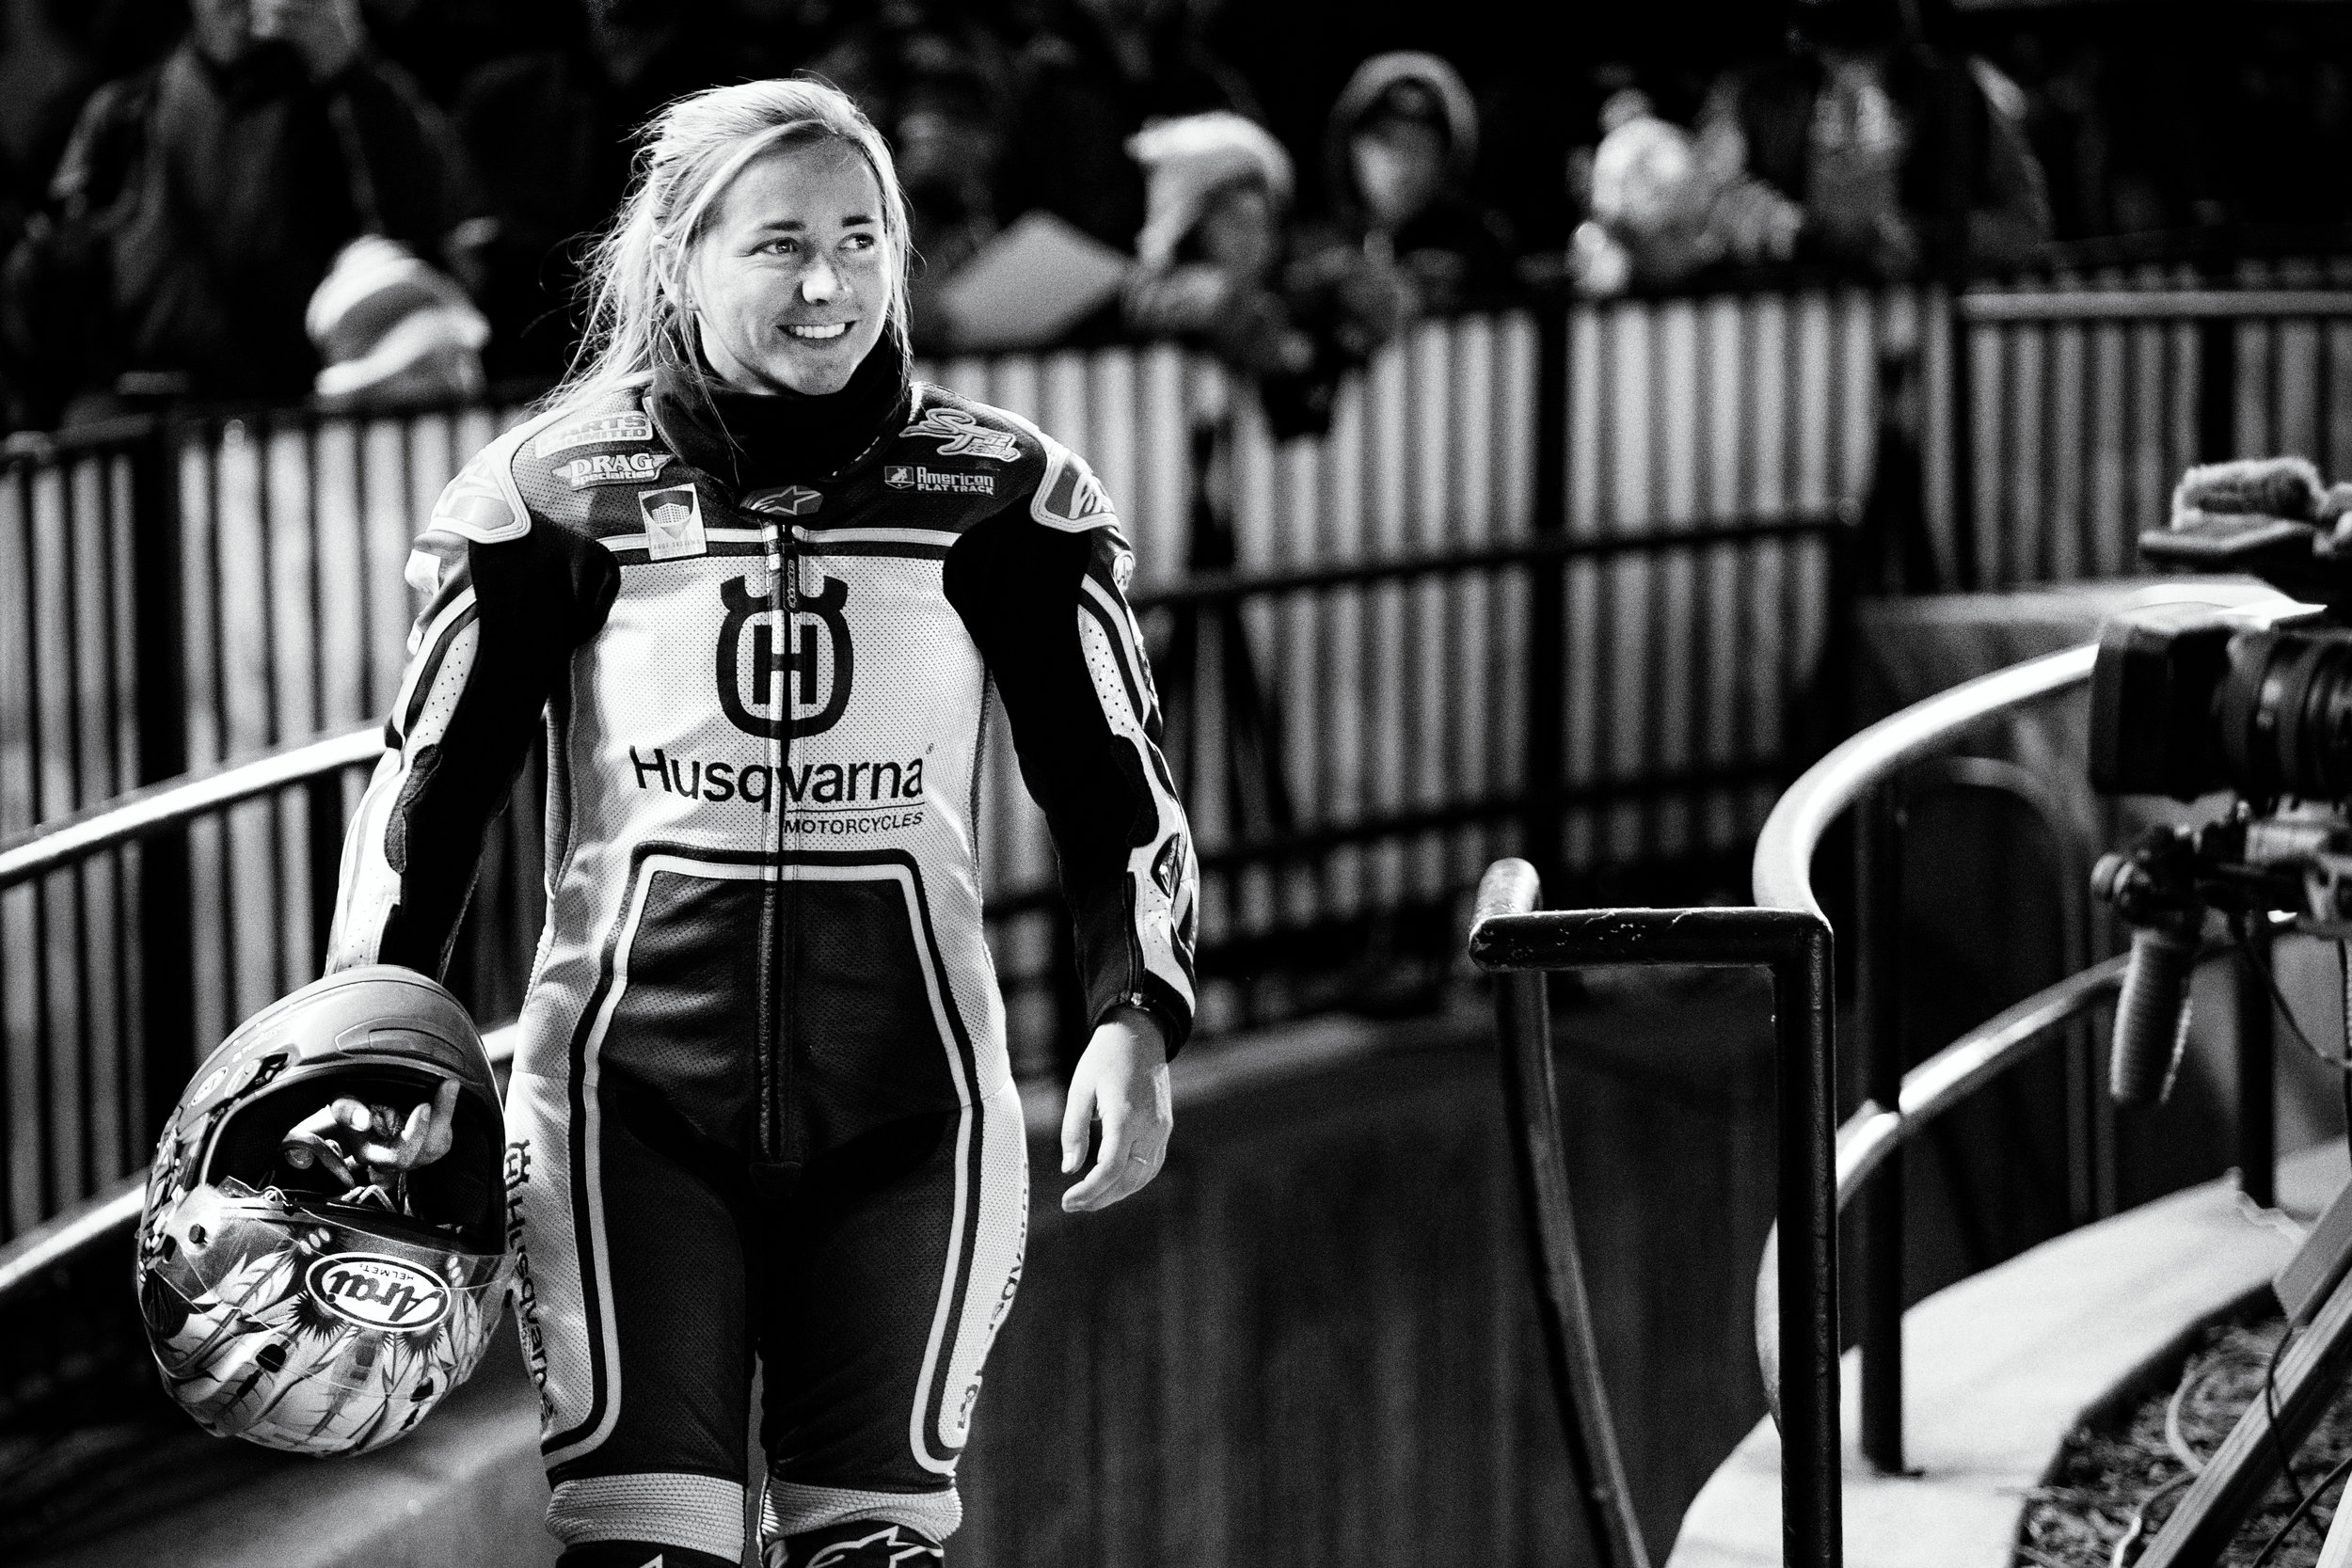 American Flat Track racer, Shayna Texter enters the track to race in the Minnesota Mile at Canterbury Park, Shakopee MN